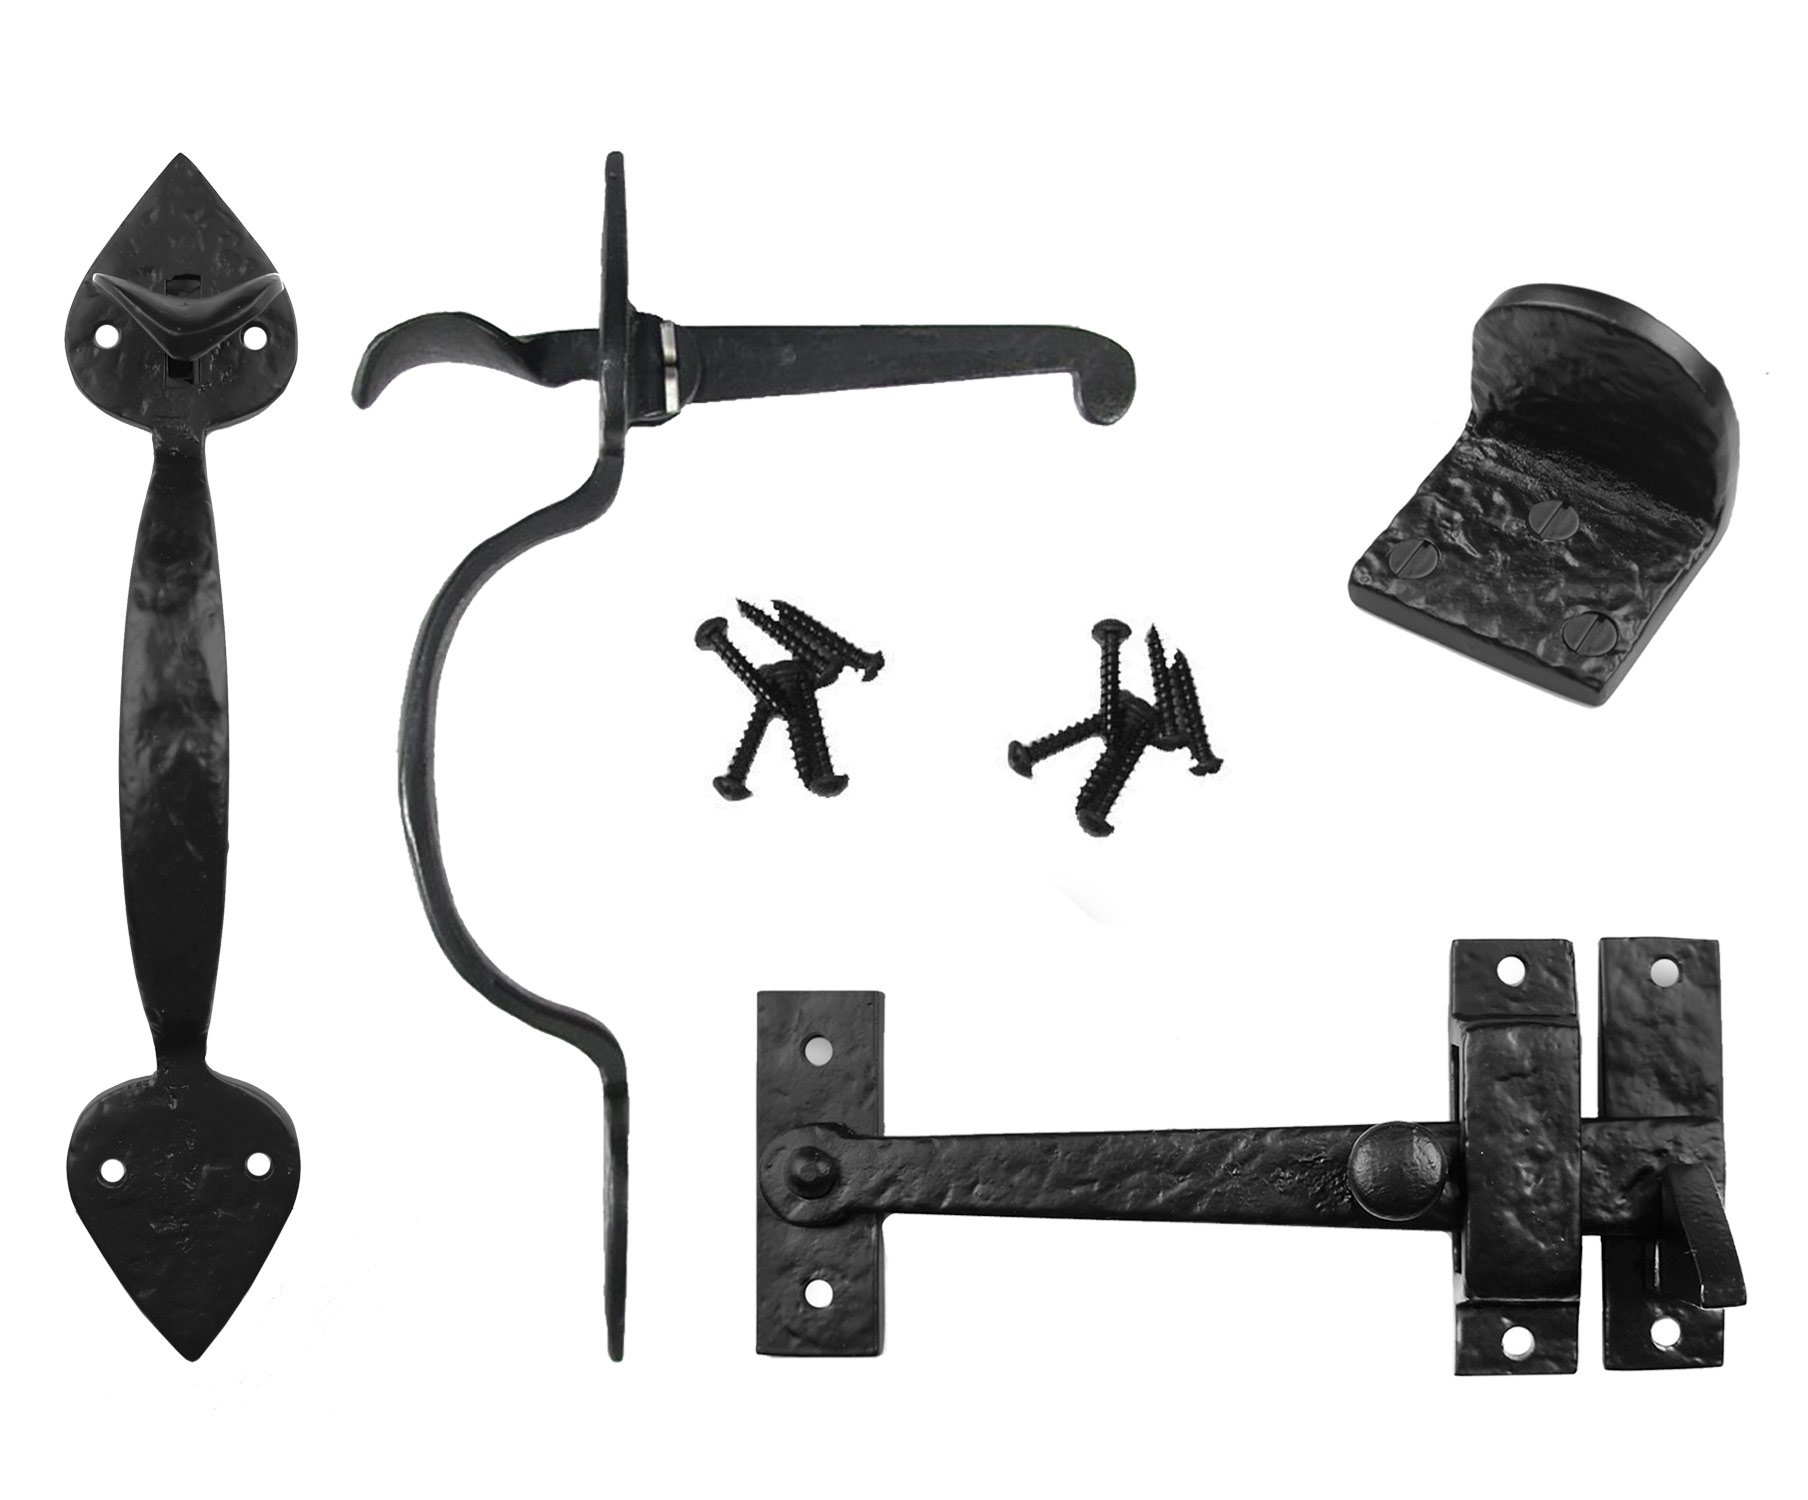 Iron Valley - Complete Heart Gate Latch Kit - Solid Cast Iron